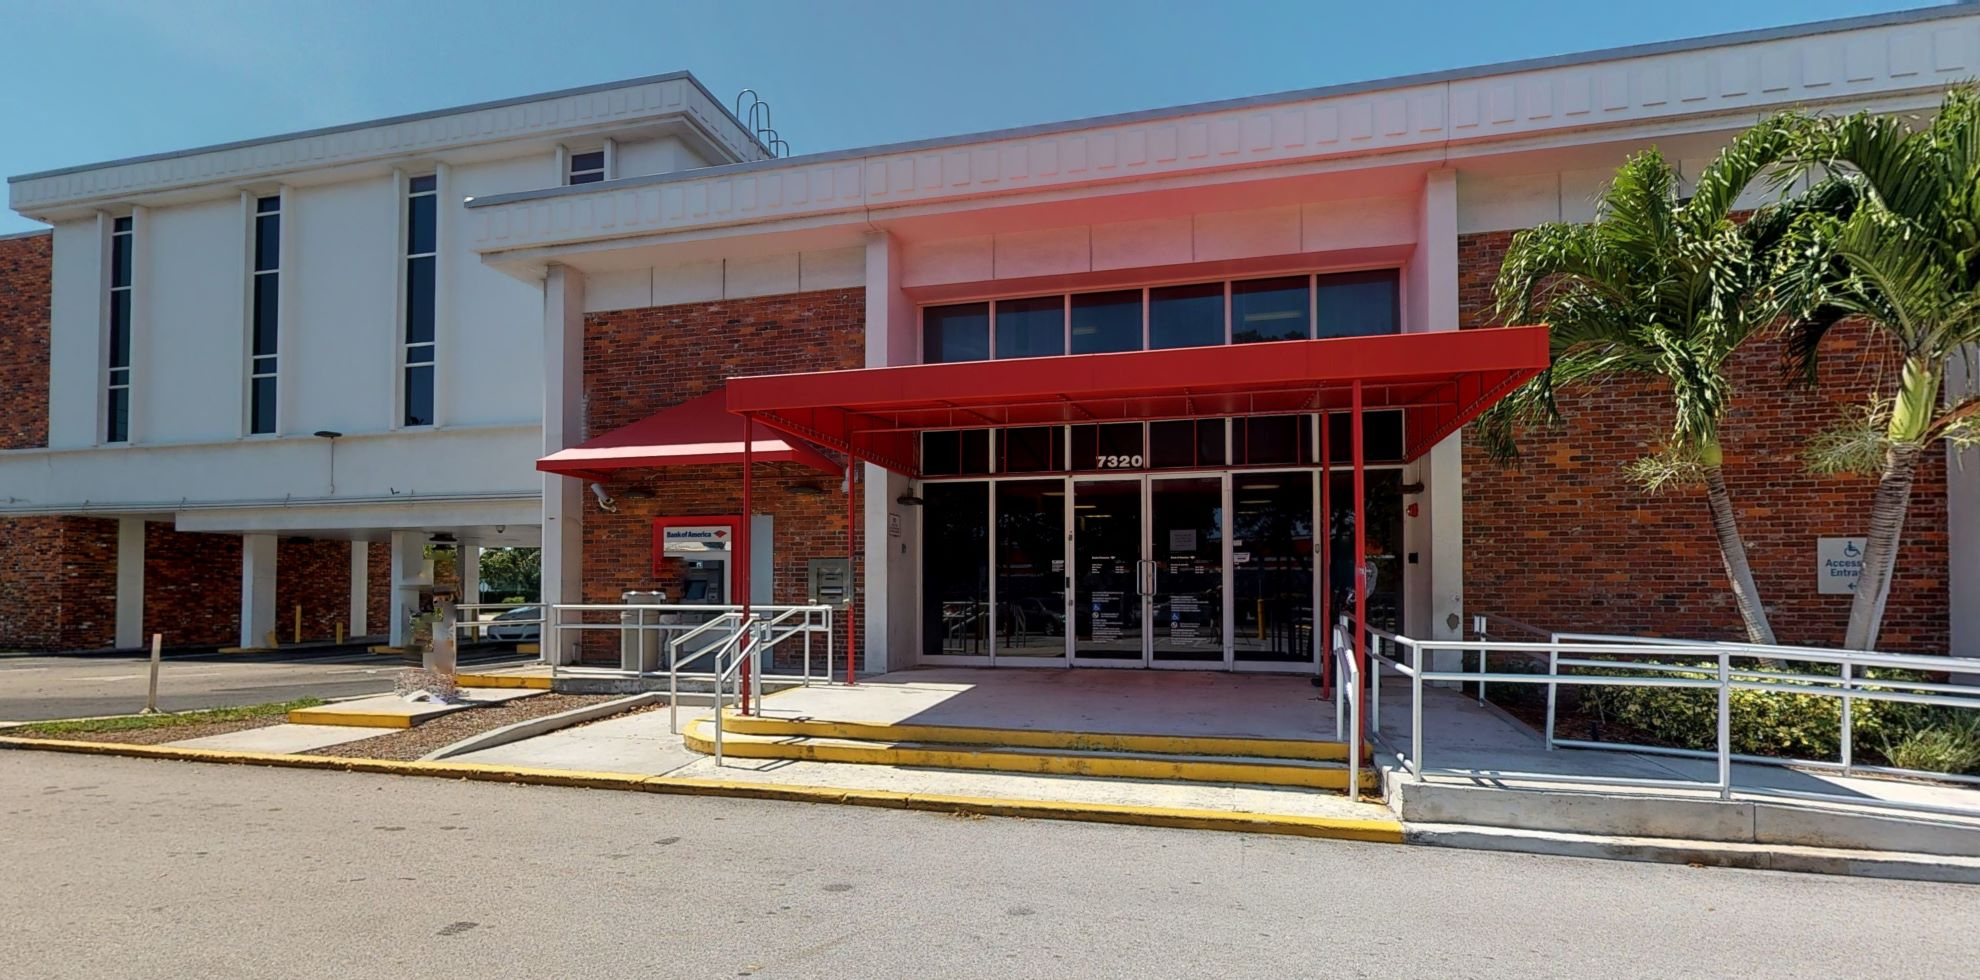 Bank of America financial center with drive-thru ATM   7320 S Dixie Hwy, West Palm Beach, FL 33405